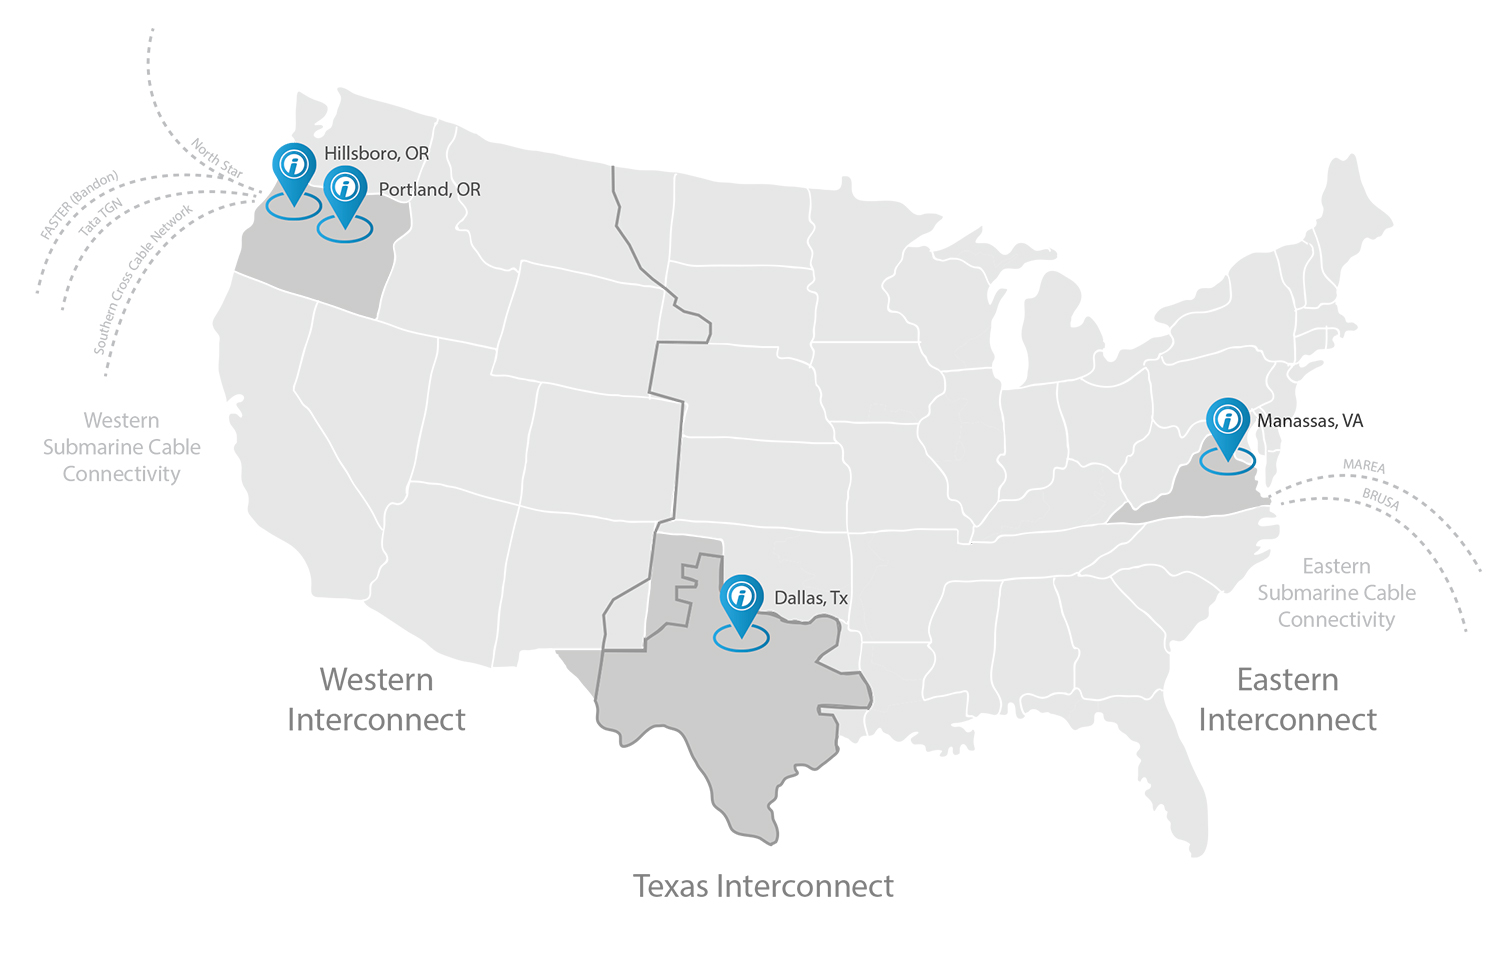 US Map showing locations of Opus Interactive data centers in Oregon, Texas, and Virginia.